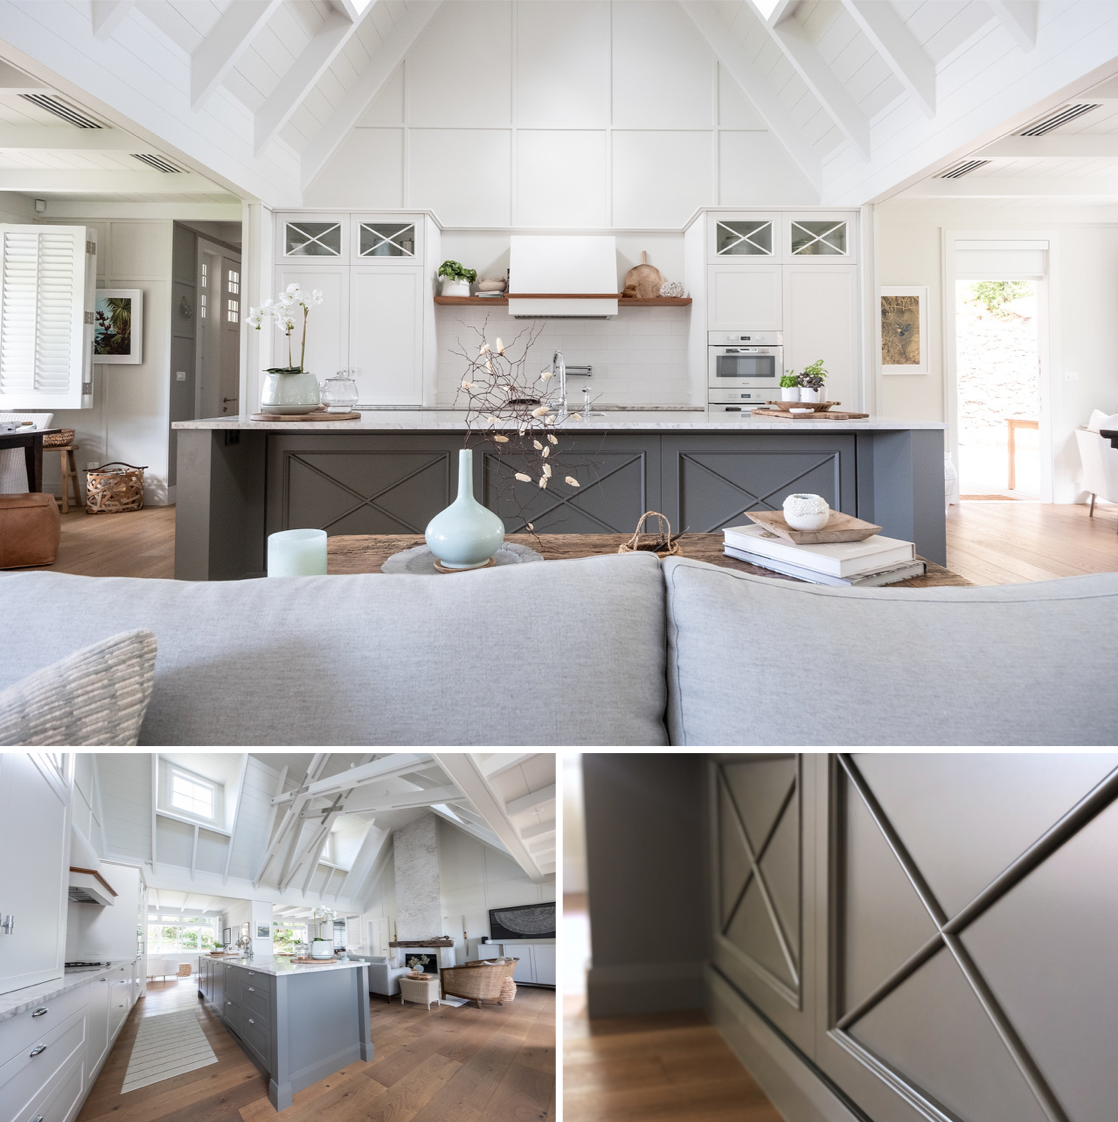 modern hamptons style kitchen with vaulted ceiling and panelling details